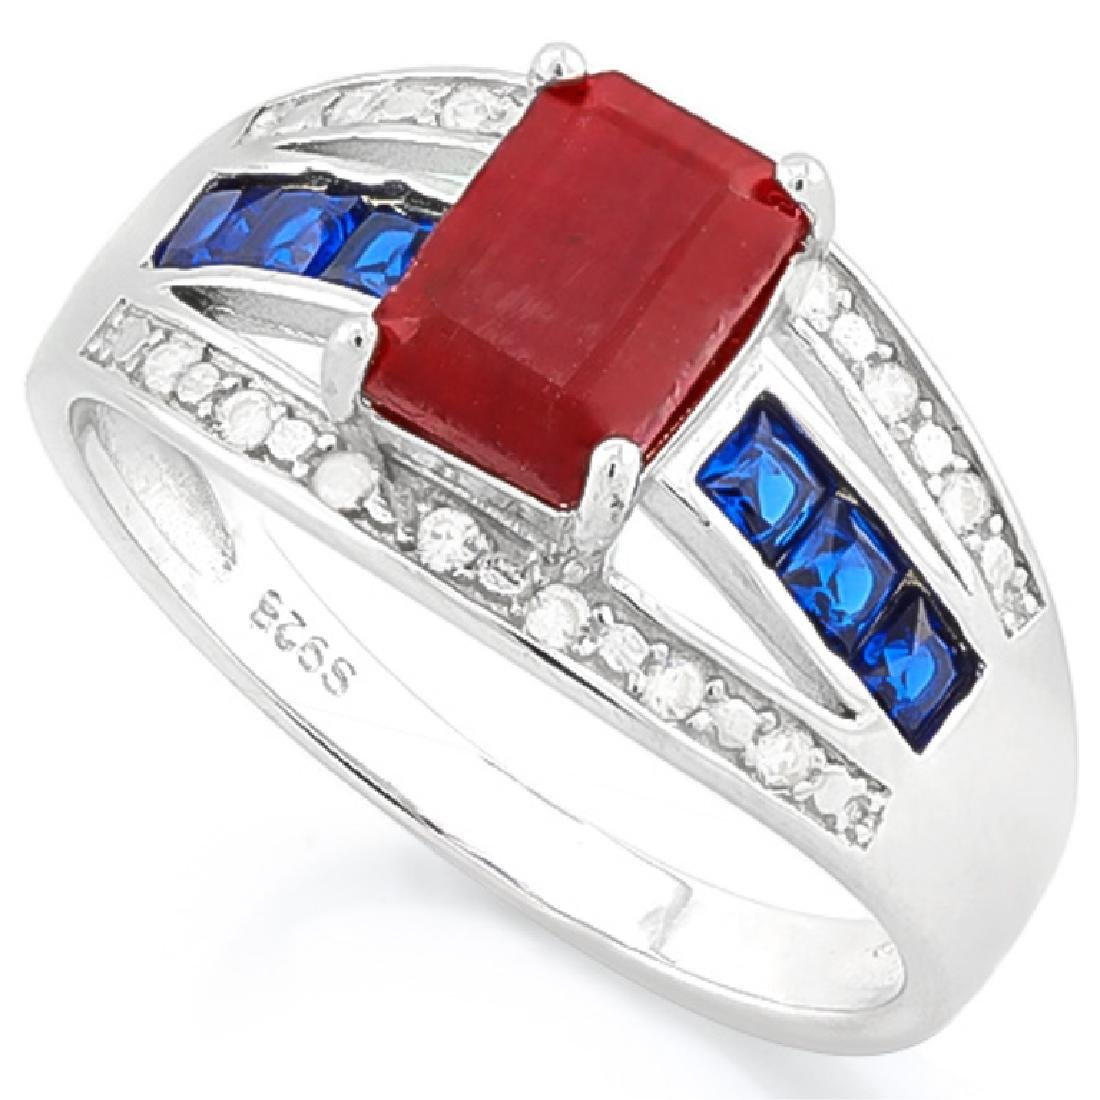 STERLING SILVER UNIQUE RUBY/SAPPHIRE DECO RING